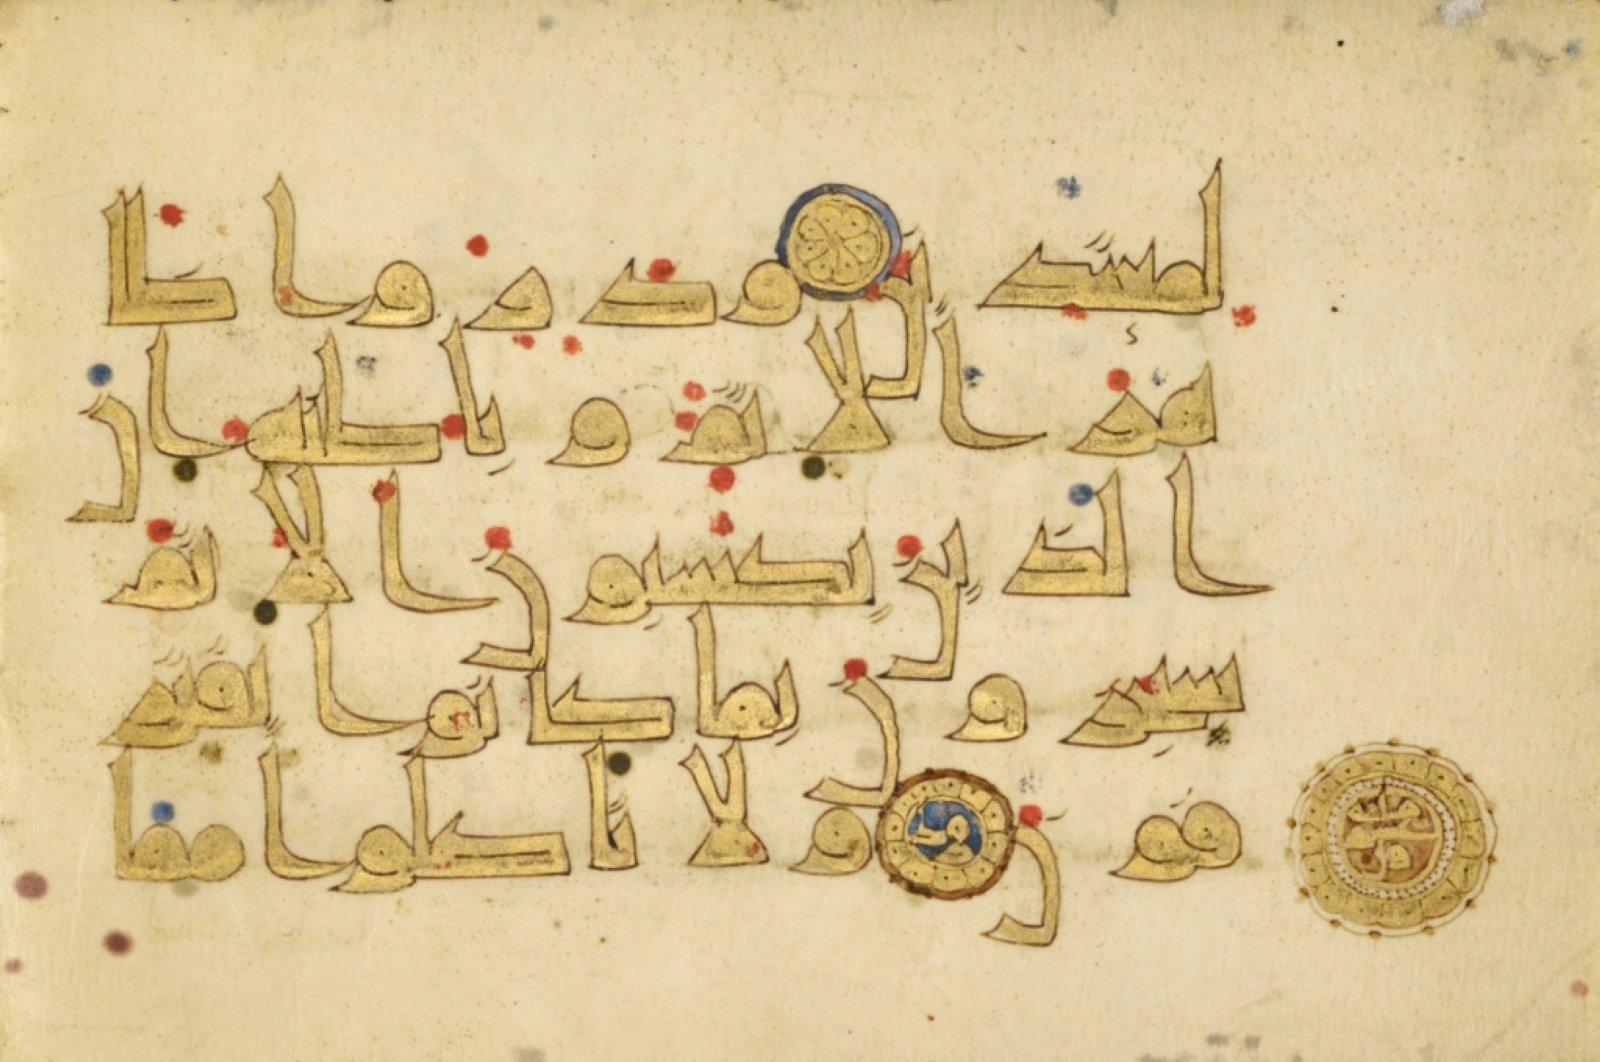 """""""Fragmentary Qur'an,"""" ninth century, pen and ink, gold paint, and tempera colors, 14.4 by 20.8 centimeters. (Courtesy of Getty Museum)"""